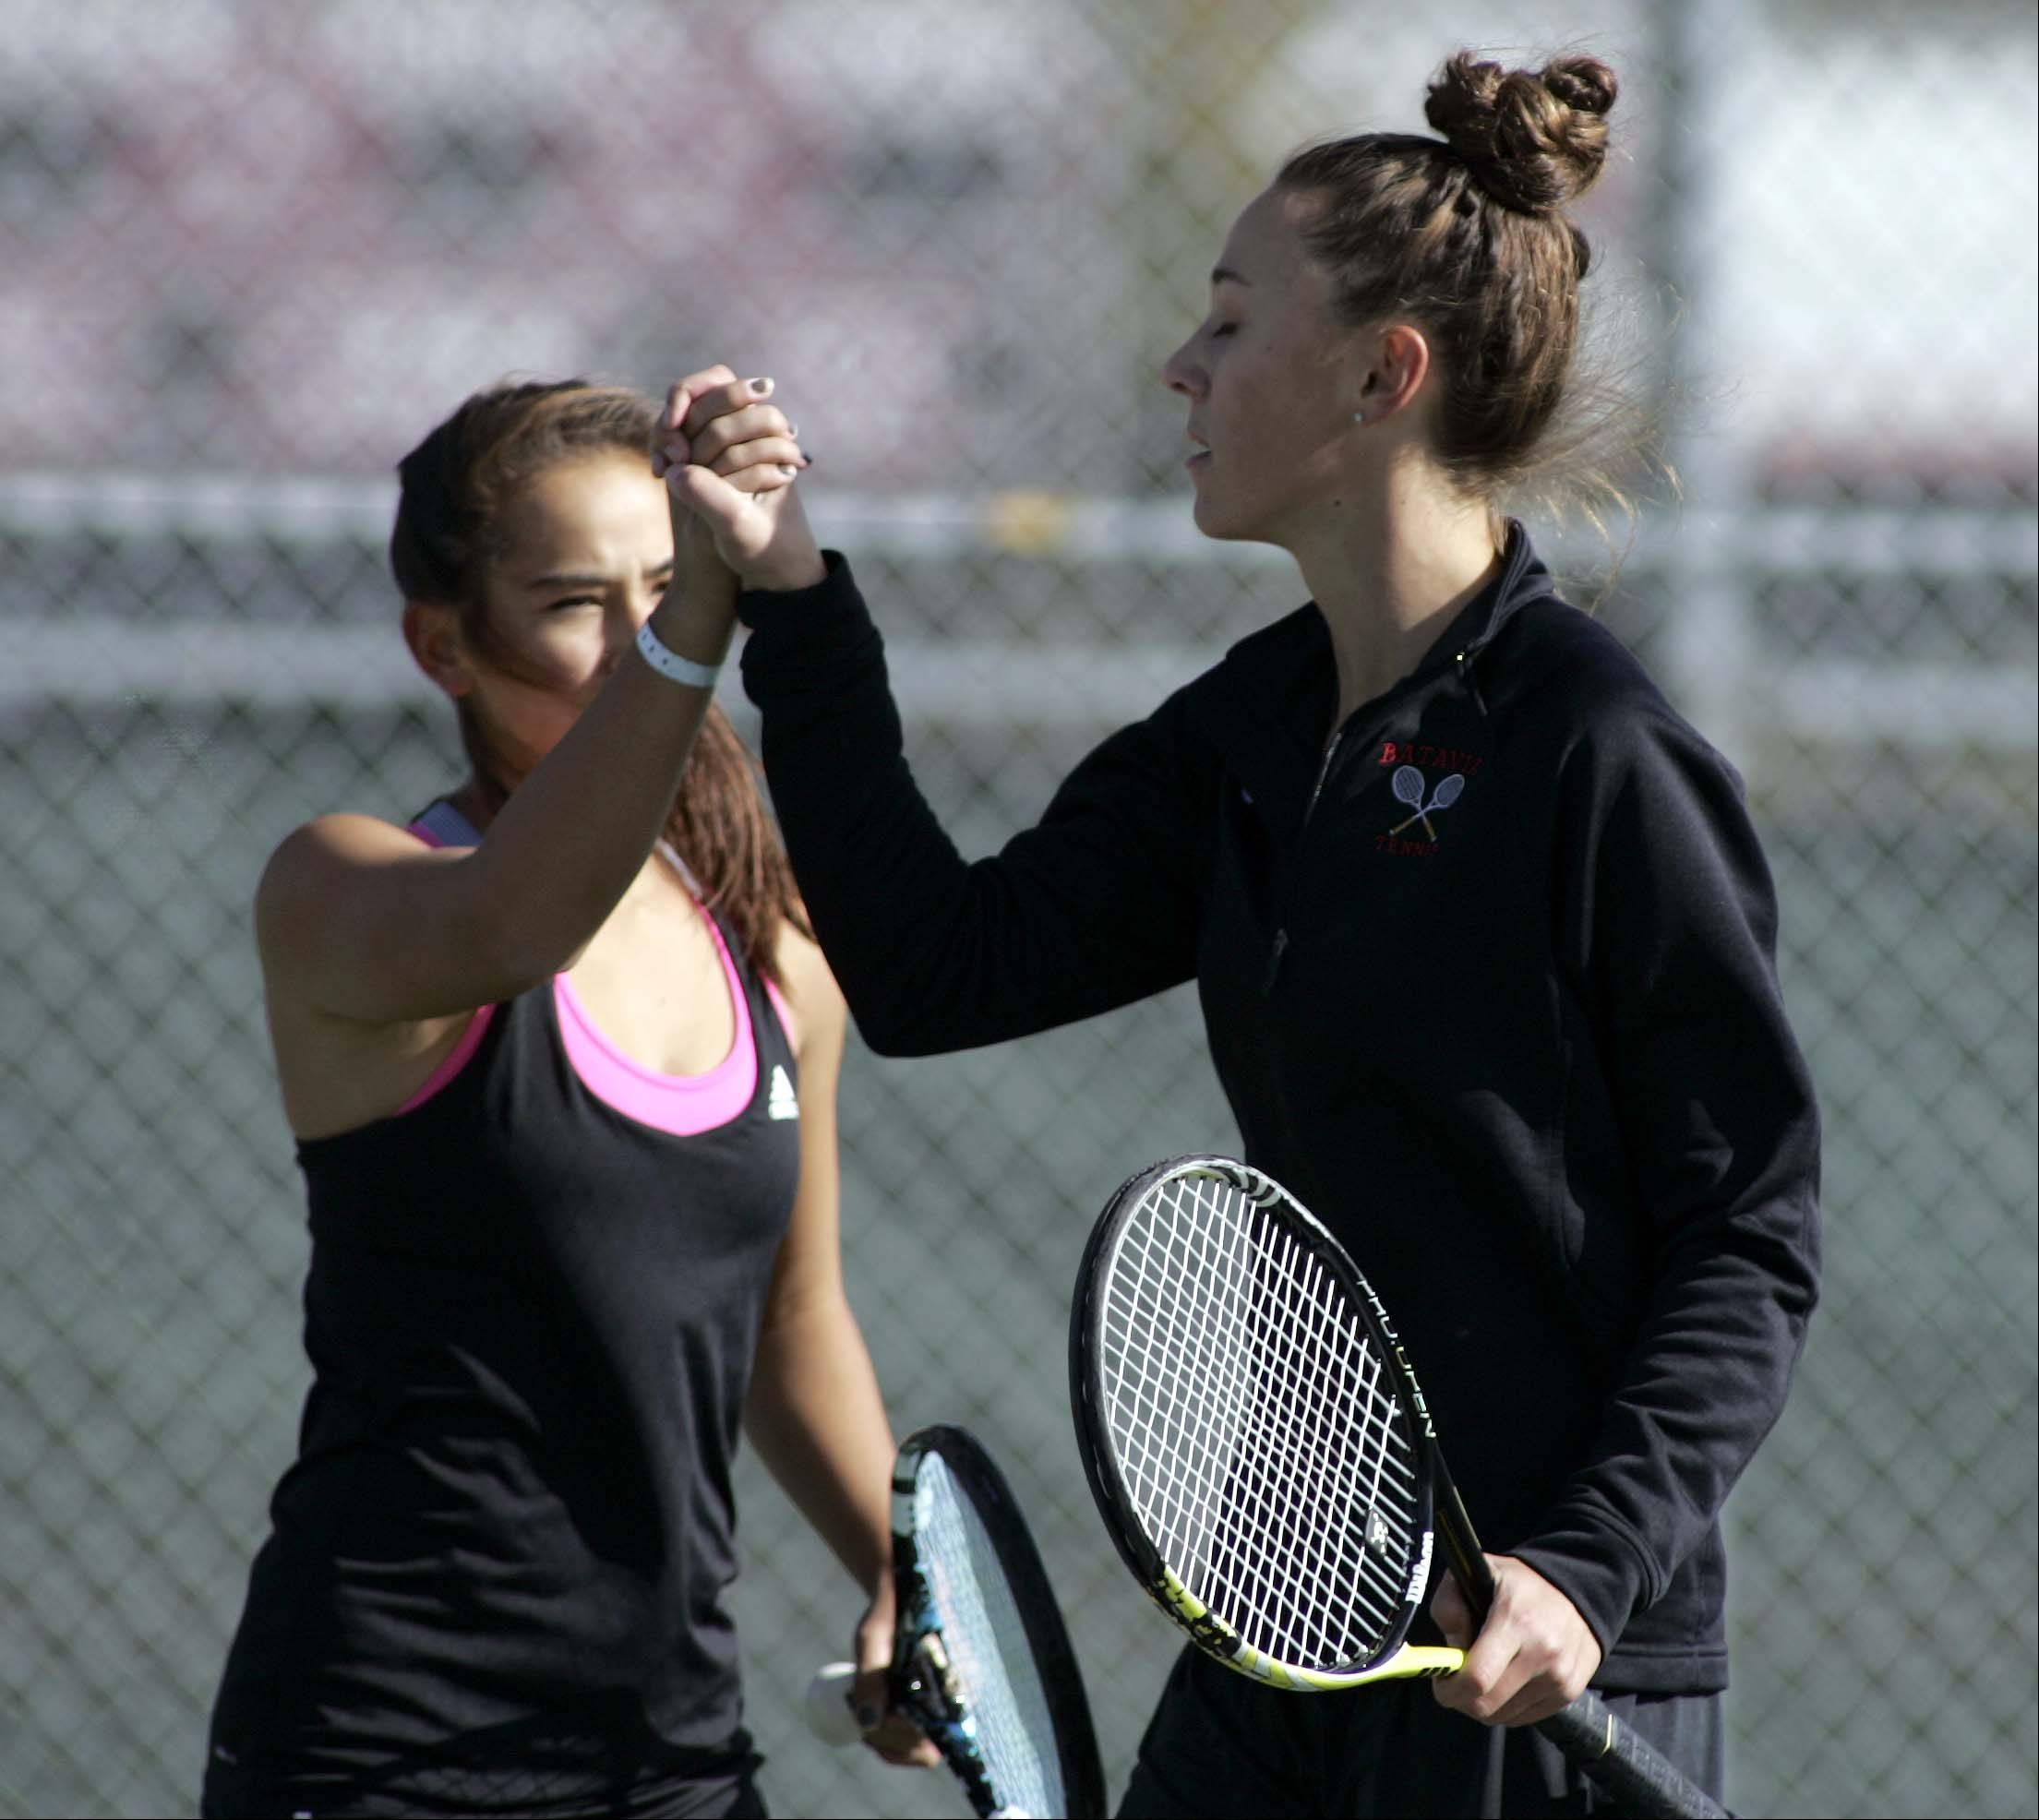 Brian Hill/bhill@dailyherald.com ¬ Batavia's Jenny Mizikar, right, and Amelia Cogan, left, celebrate a point during doubles play at the Upstate Eight Rive tennis meet Saturday October 6, 2012 at Elgin High School.